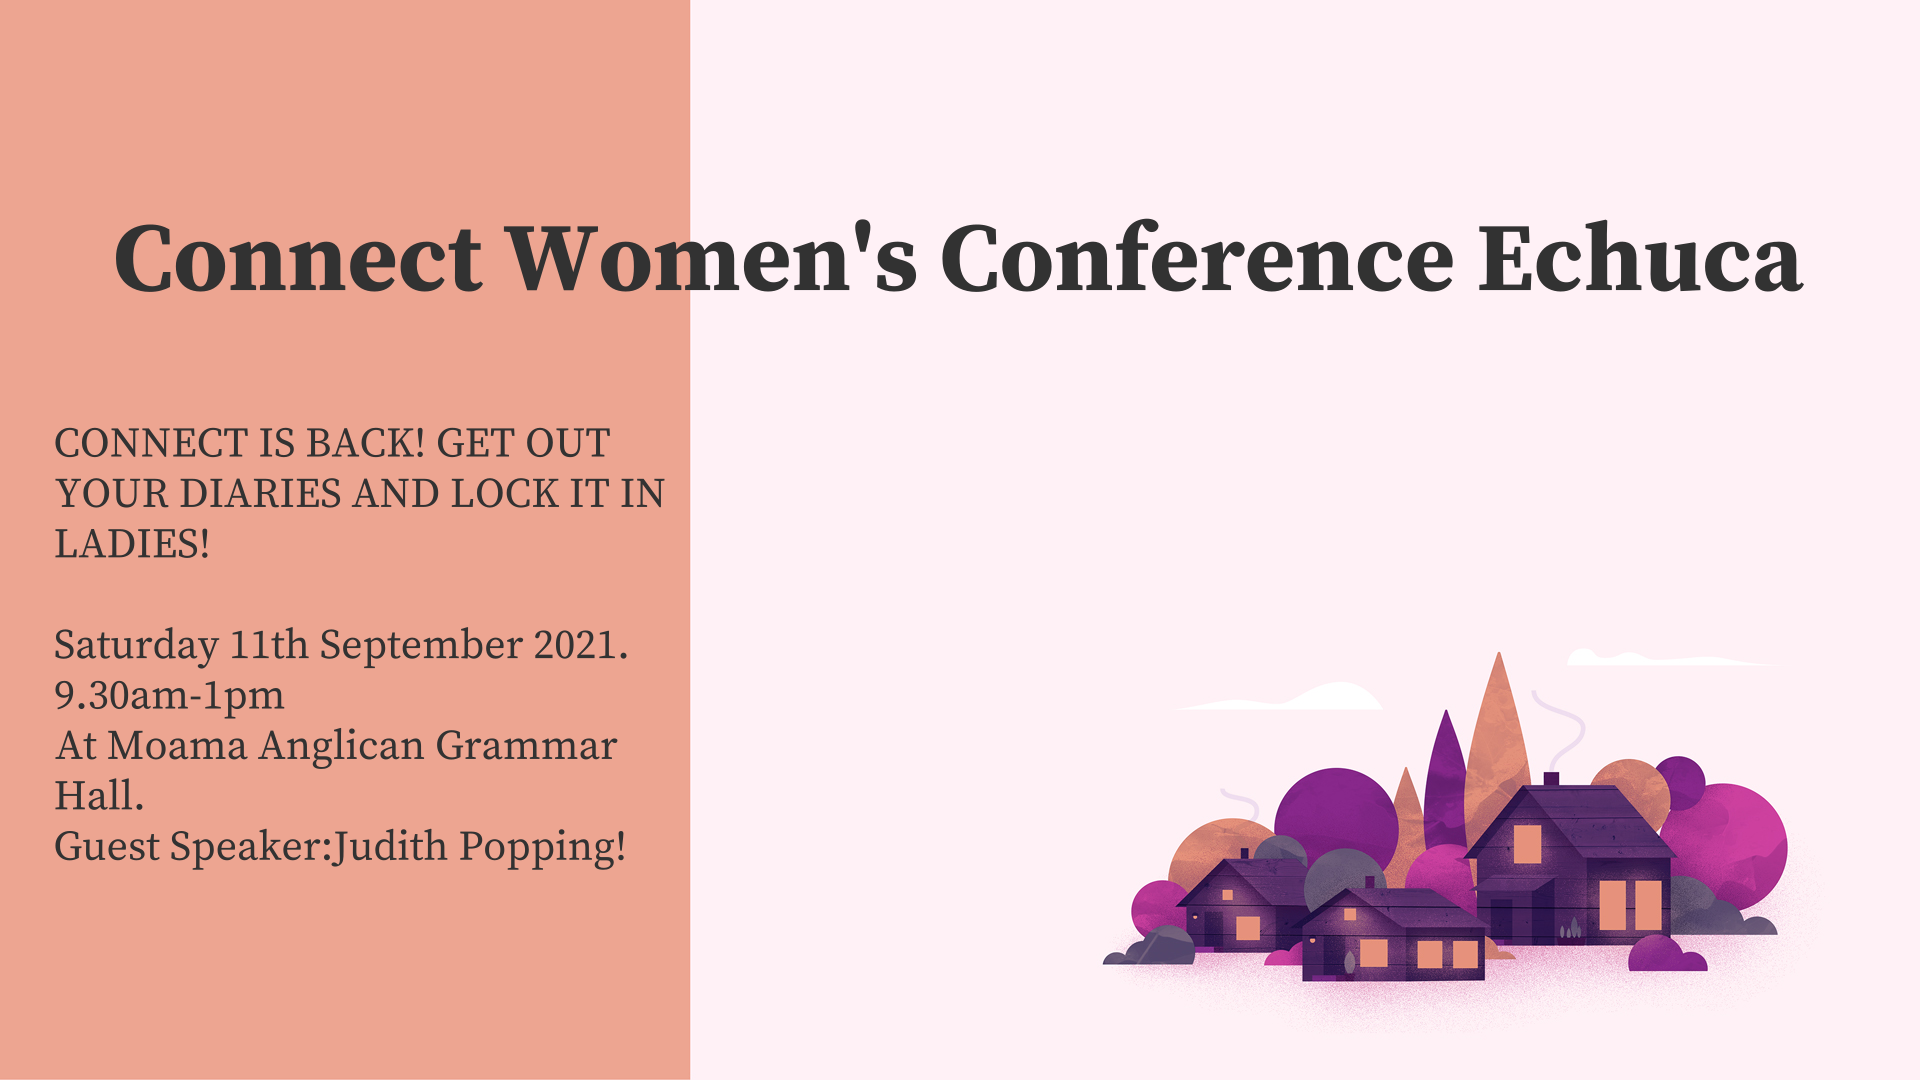 Connect Women's Conference Echuca